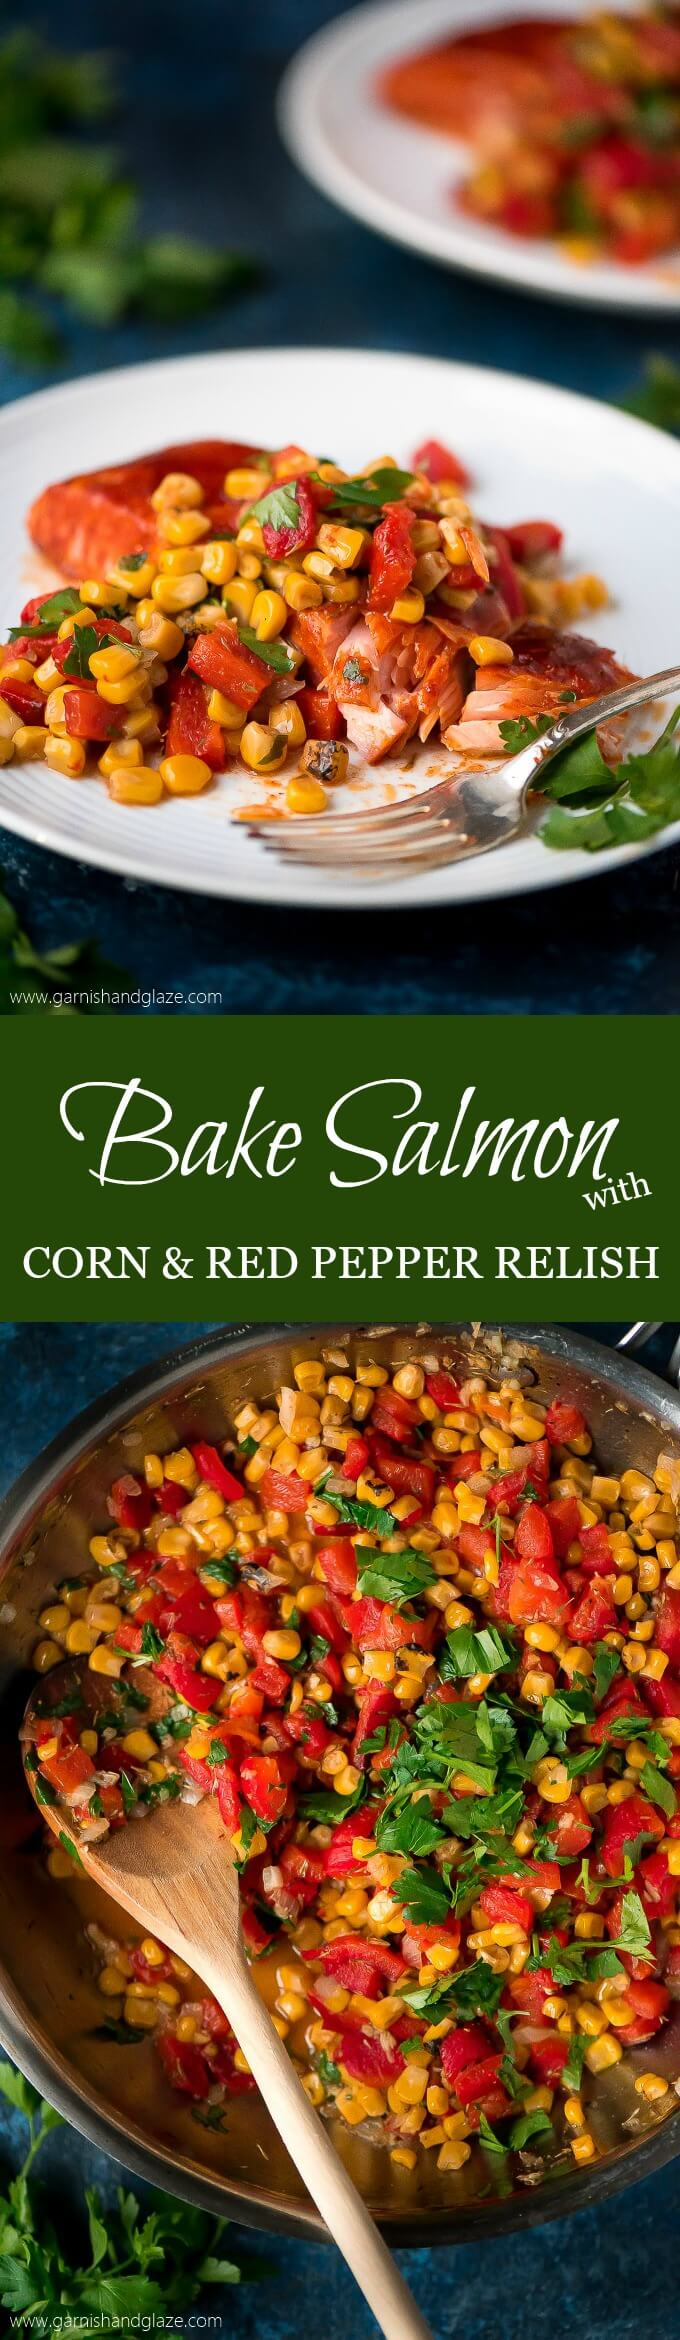 Baked Salmon With Corn & Red Pepper Relish Is A Veggie Filled, Flavor  Packed Meal